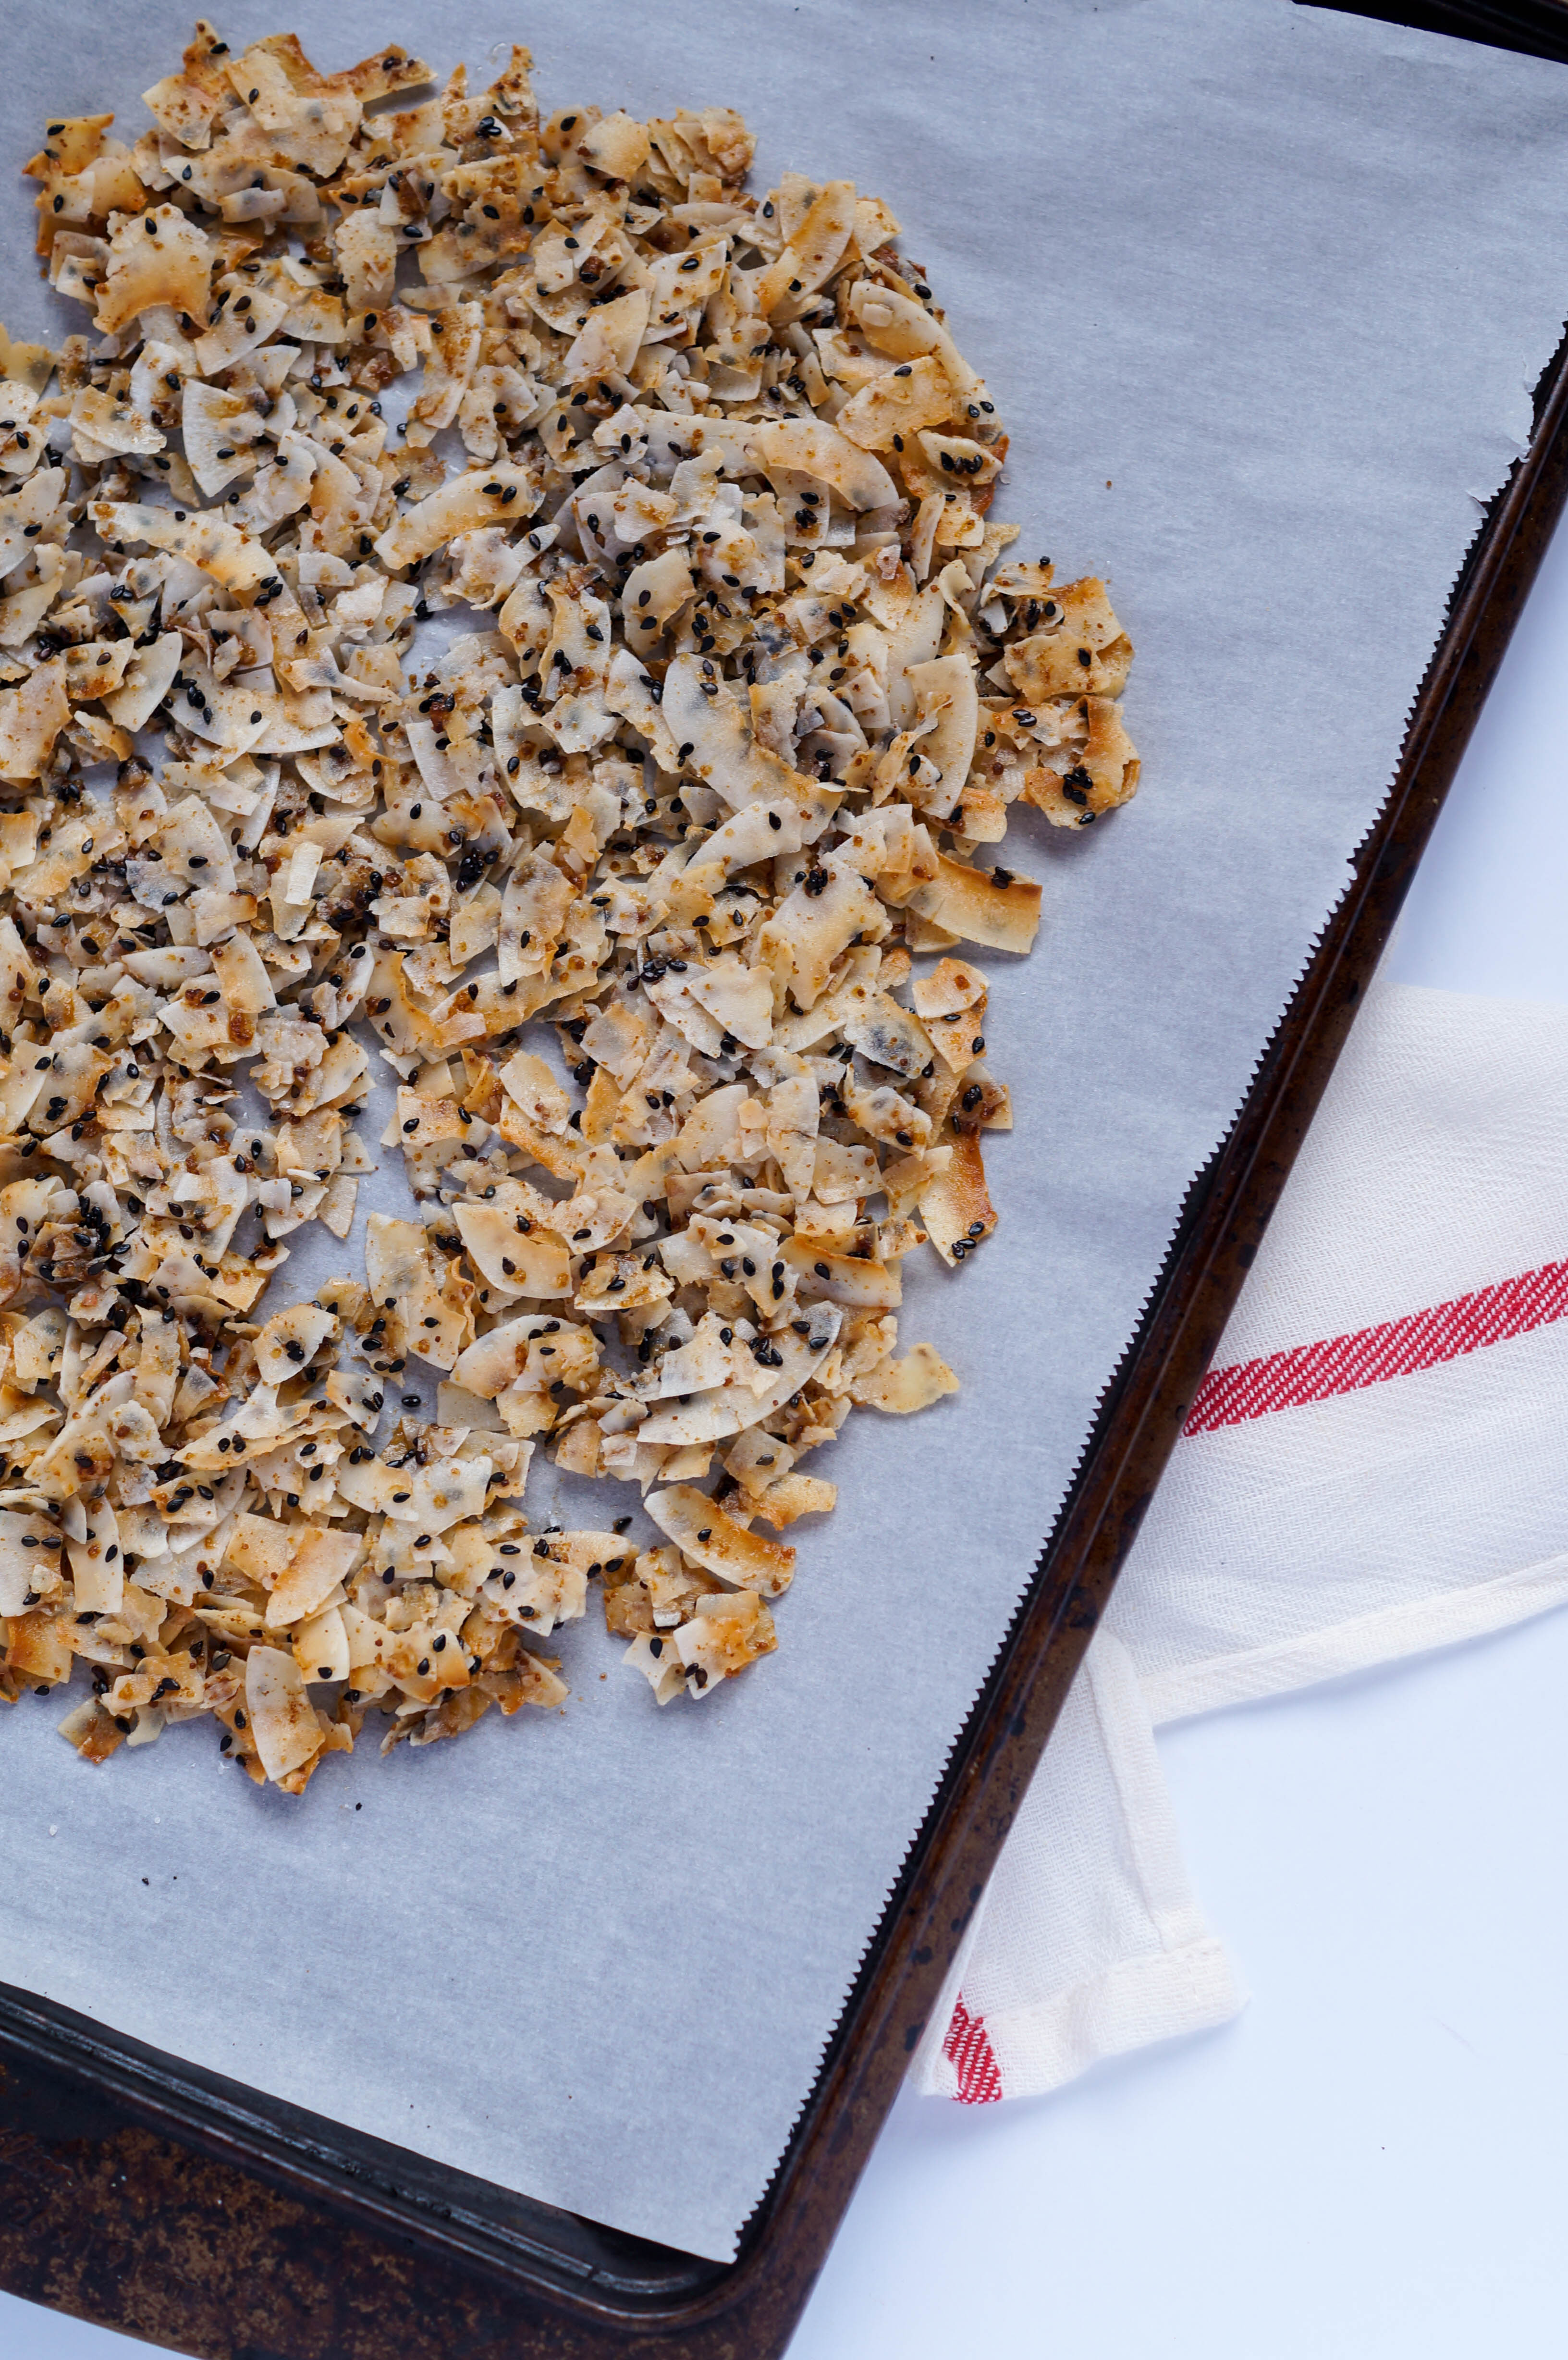 Toasted Sesame Coconut Clusters, Vegan, Gluten-free, No Refined Sugar. Such an easy snack that can be thrown together in less than 10 minutes!